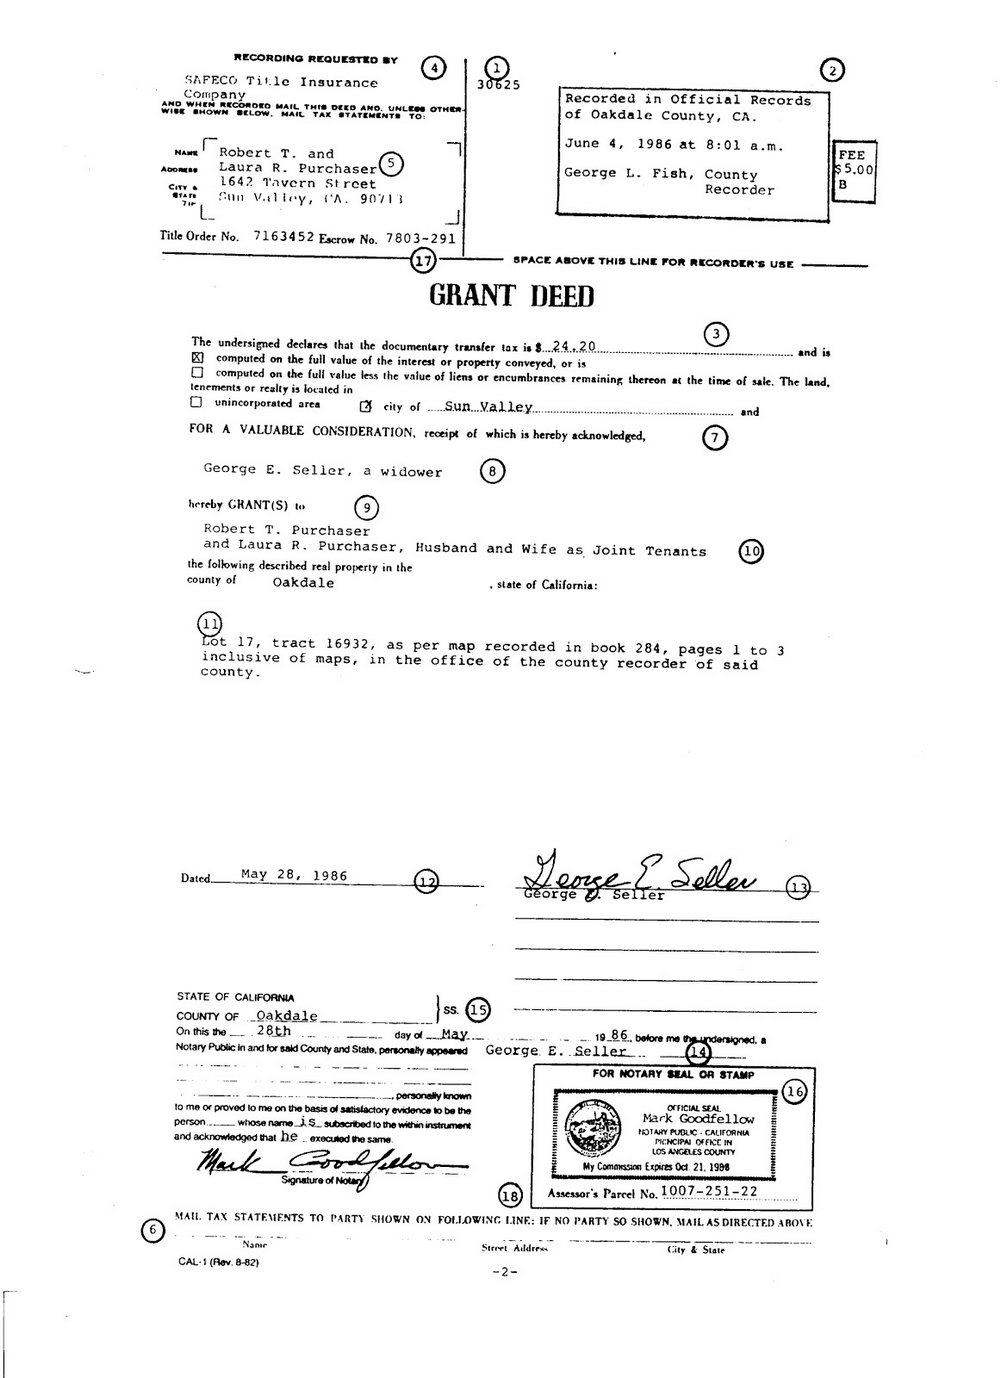 Grant Deed Form